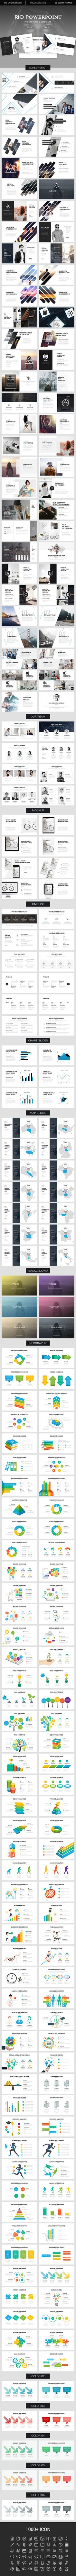 Rio Powerpoint Template. Download here: http://graphicriver.net/item/rio-powerpoint-template/16170411?ref=ksioks